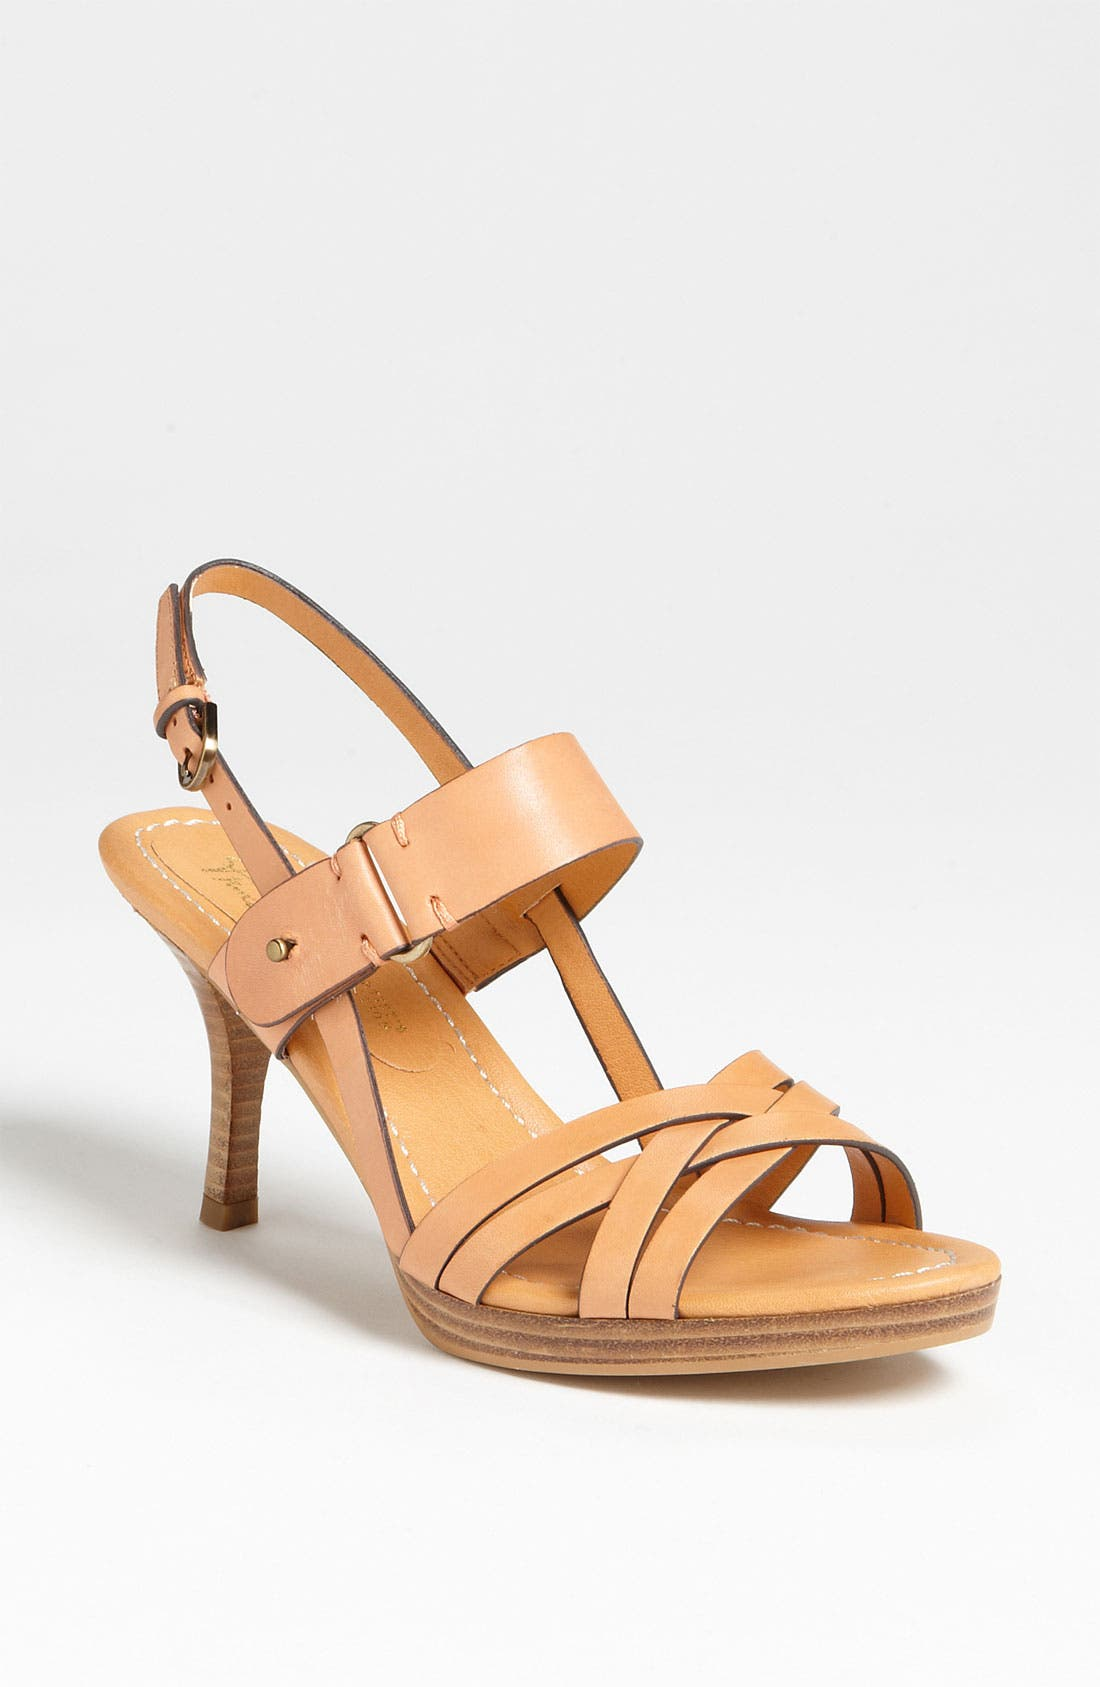 Alternate Image 1 Selected - Franco Sarto 'Ambra' Sandal